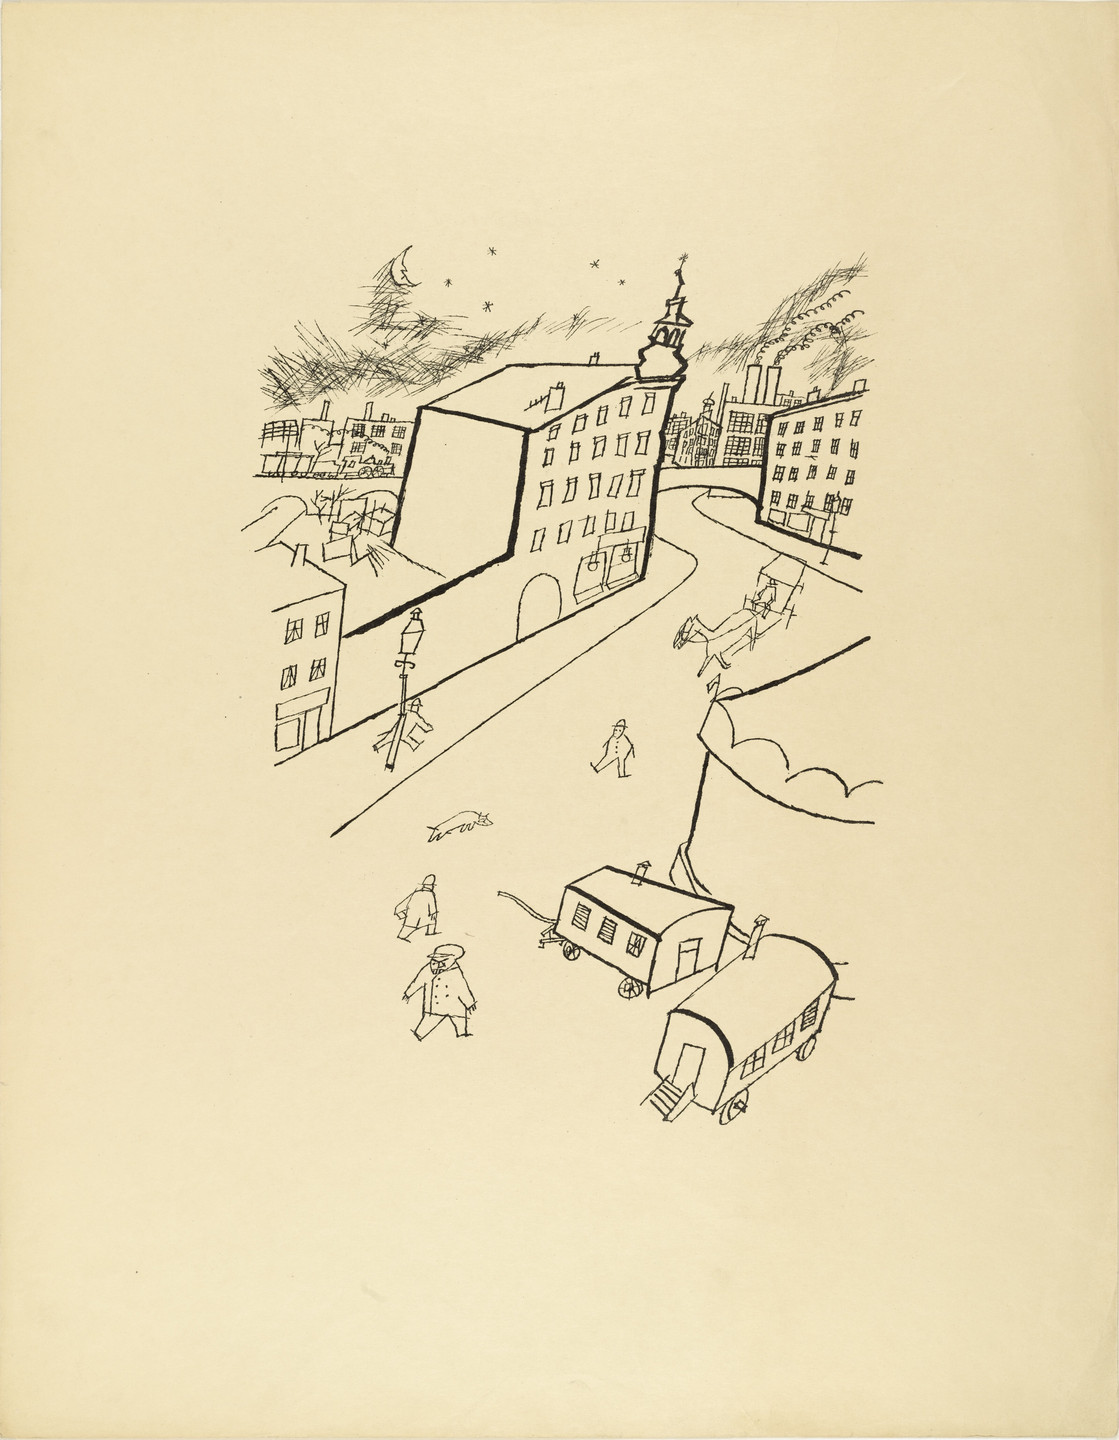 George Grosz. Outskirts (Peripherie) from The First George Grosz Portfolio (Erste George Grosz-Mappe). 1915–16, published 1916–17